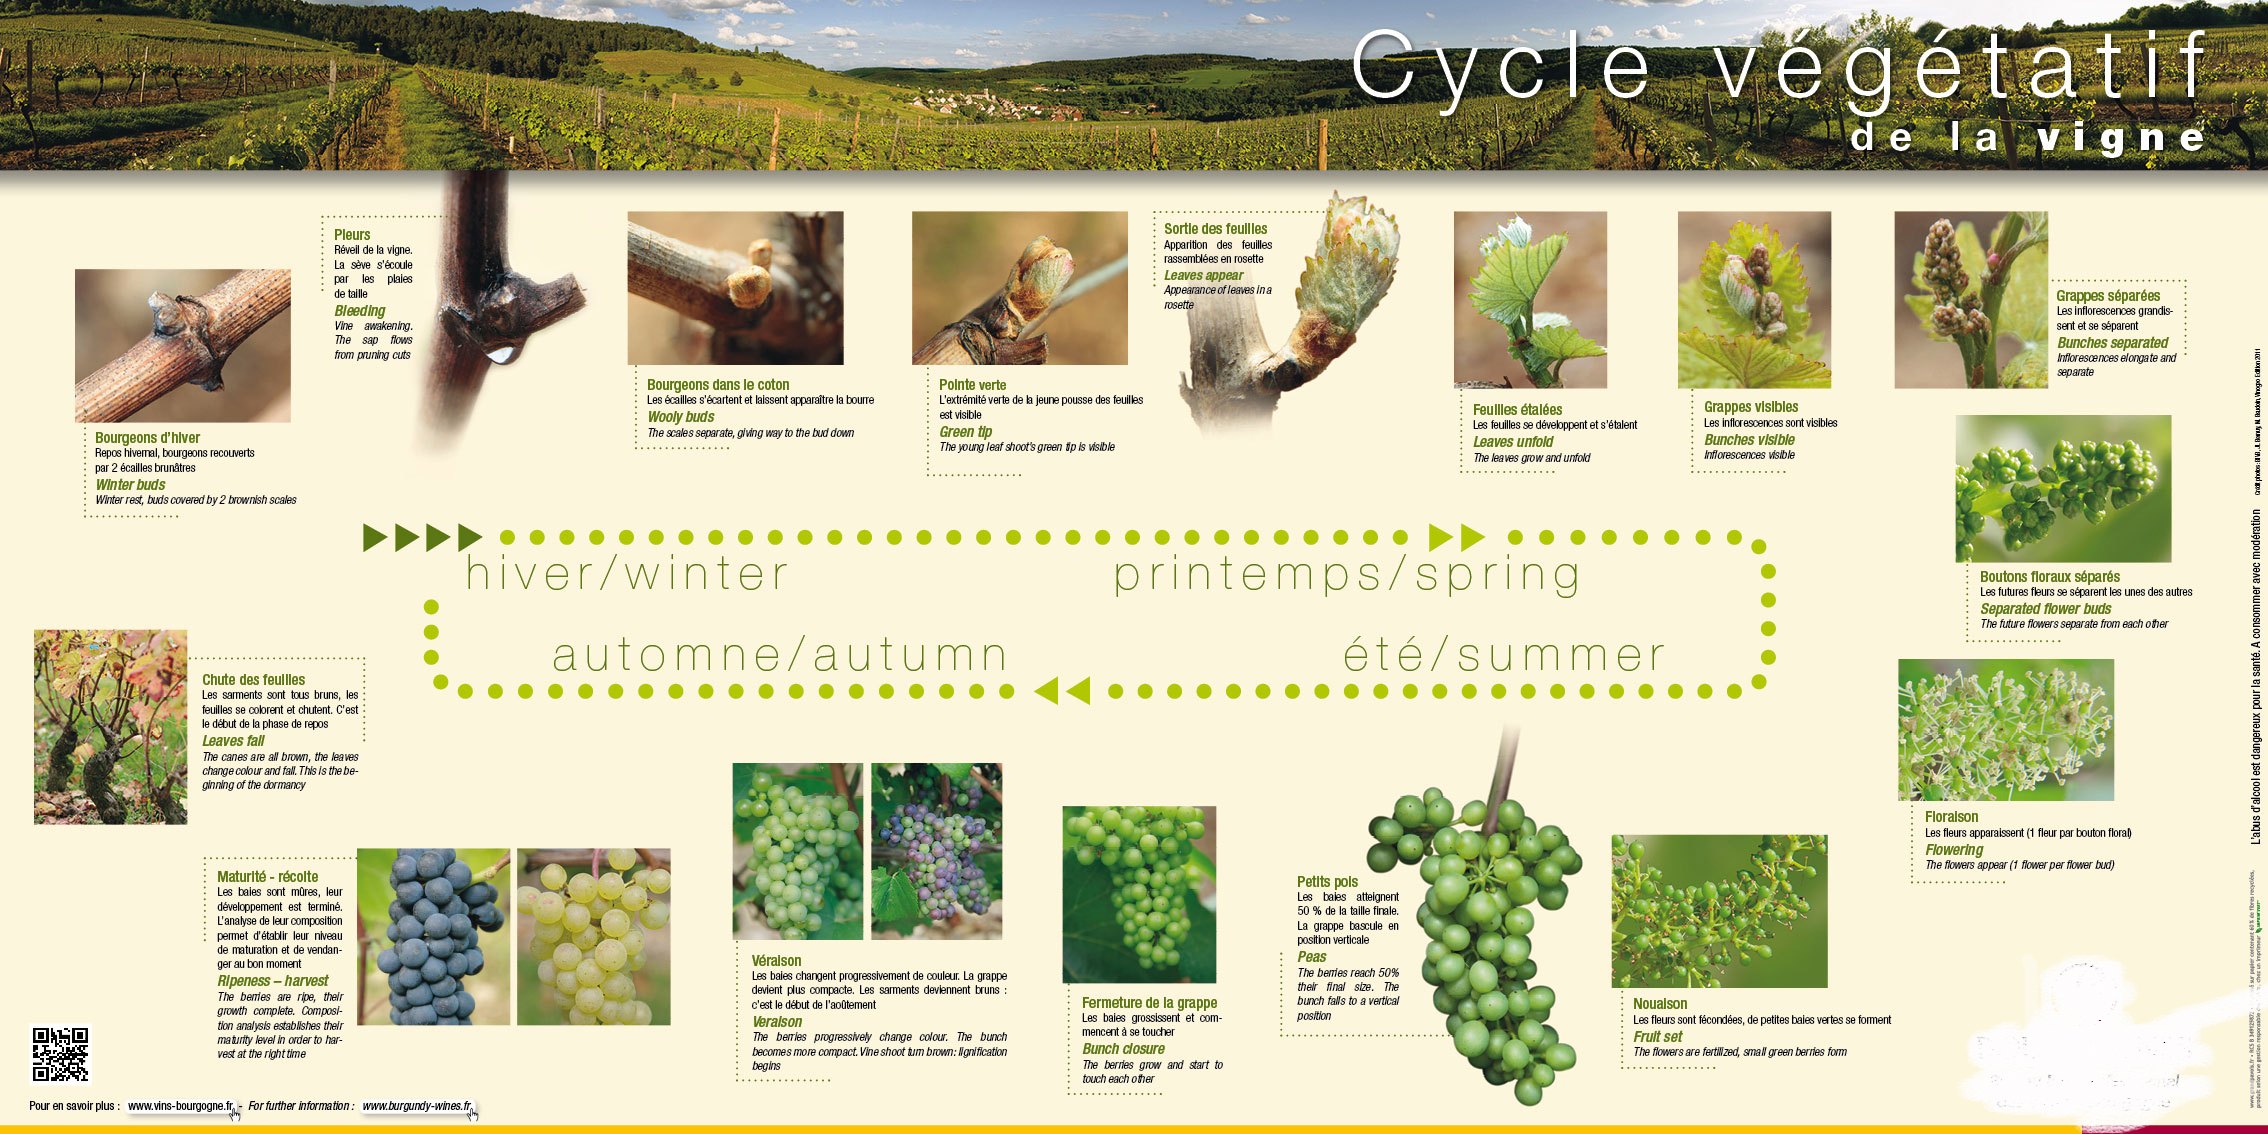 cycle-vegetatif-de-la-vigne